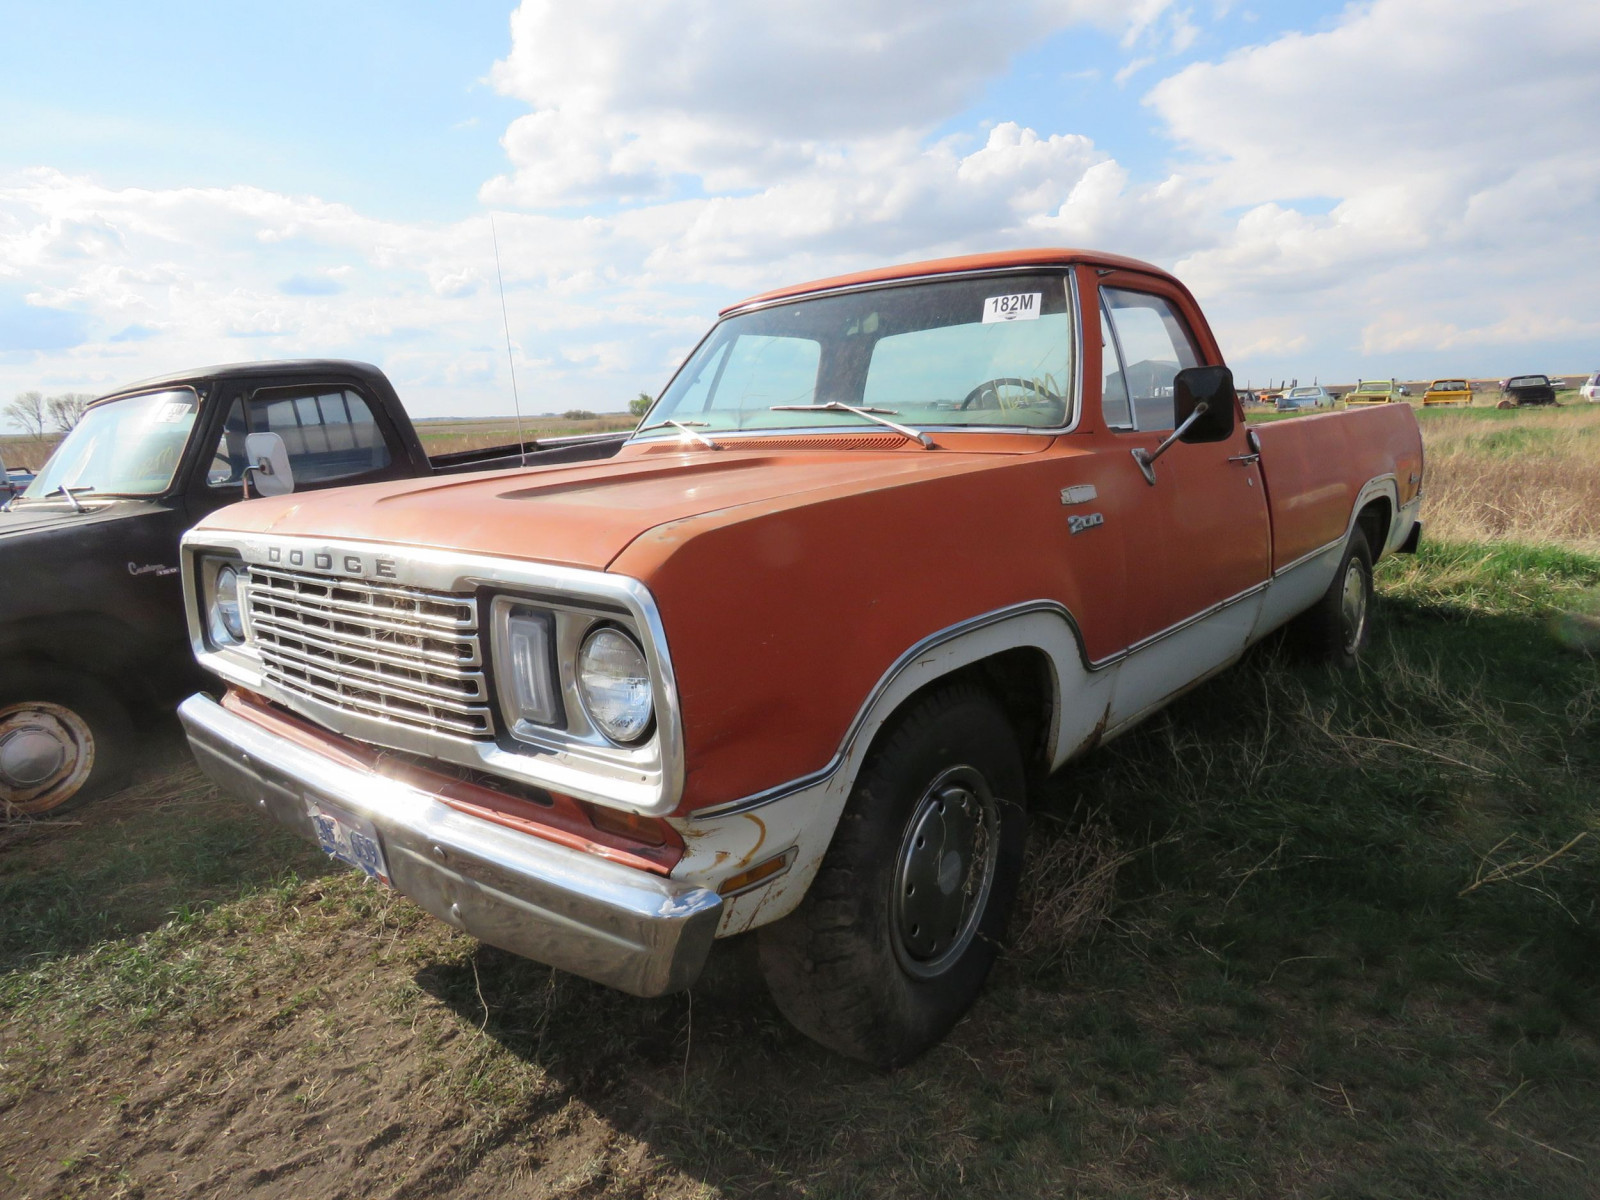 1973 Dodge D200 Pickup - Image 1